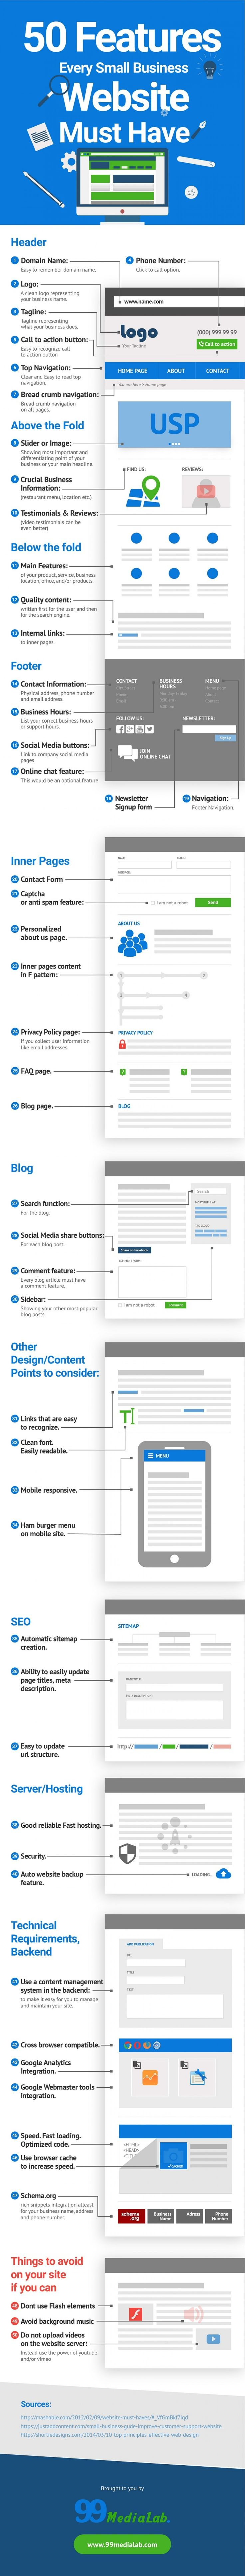 50 Features Every Small Business Website Should Have Infographic  www.directoryvan.com